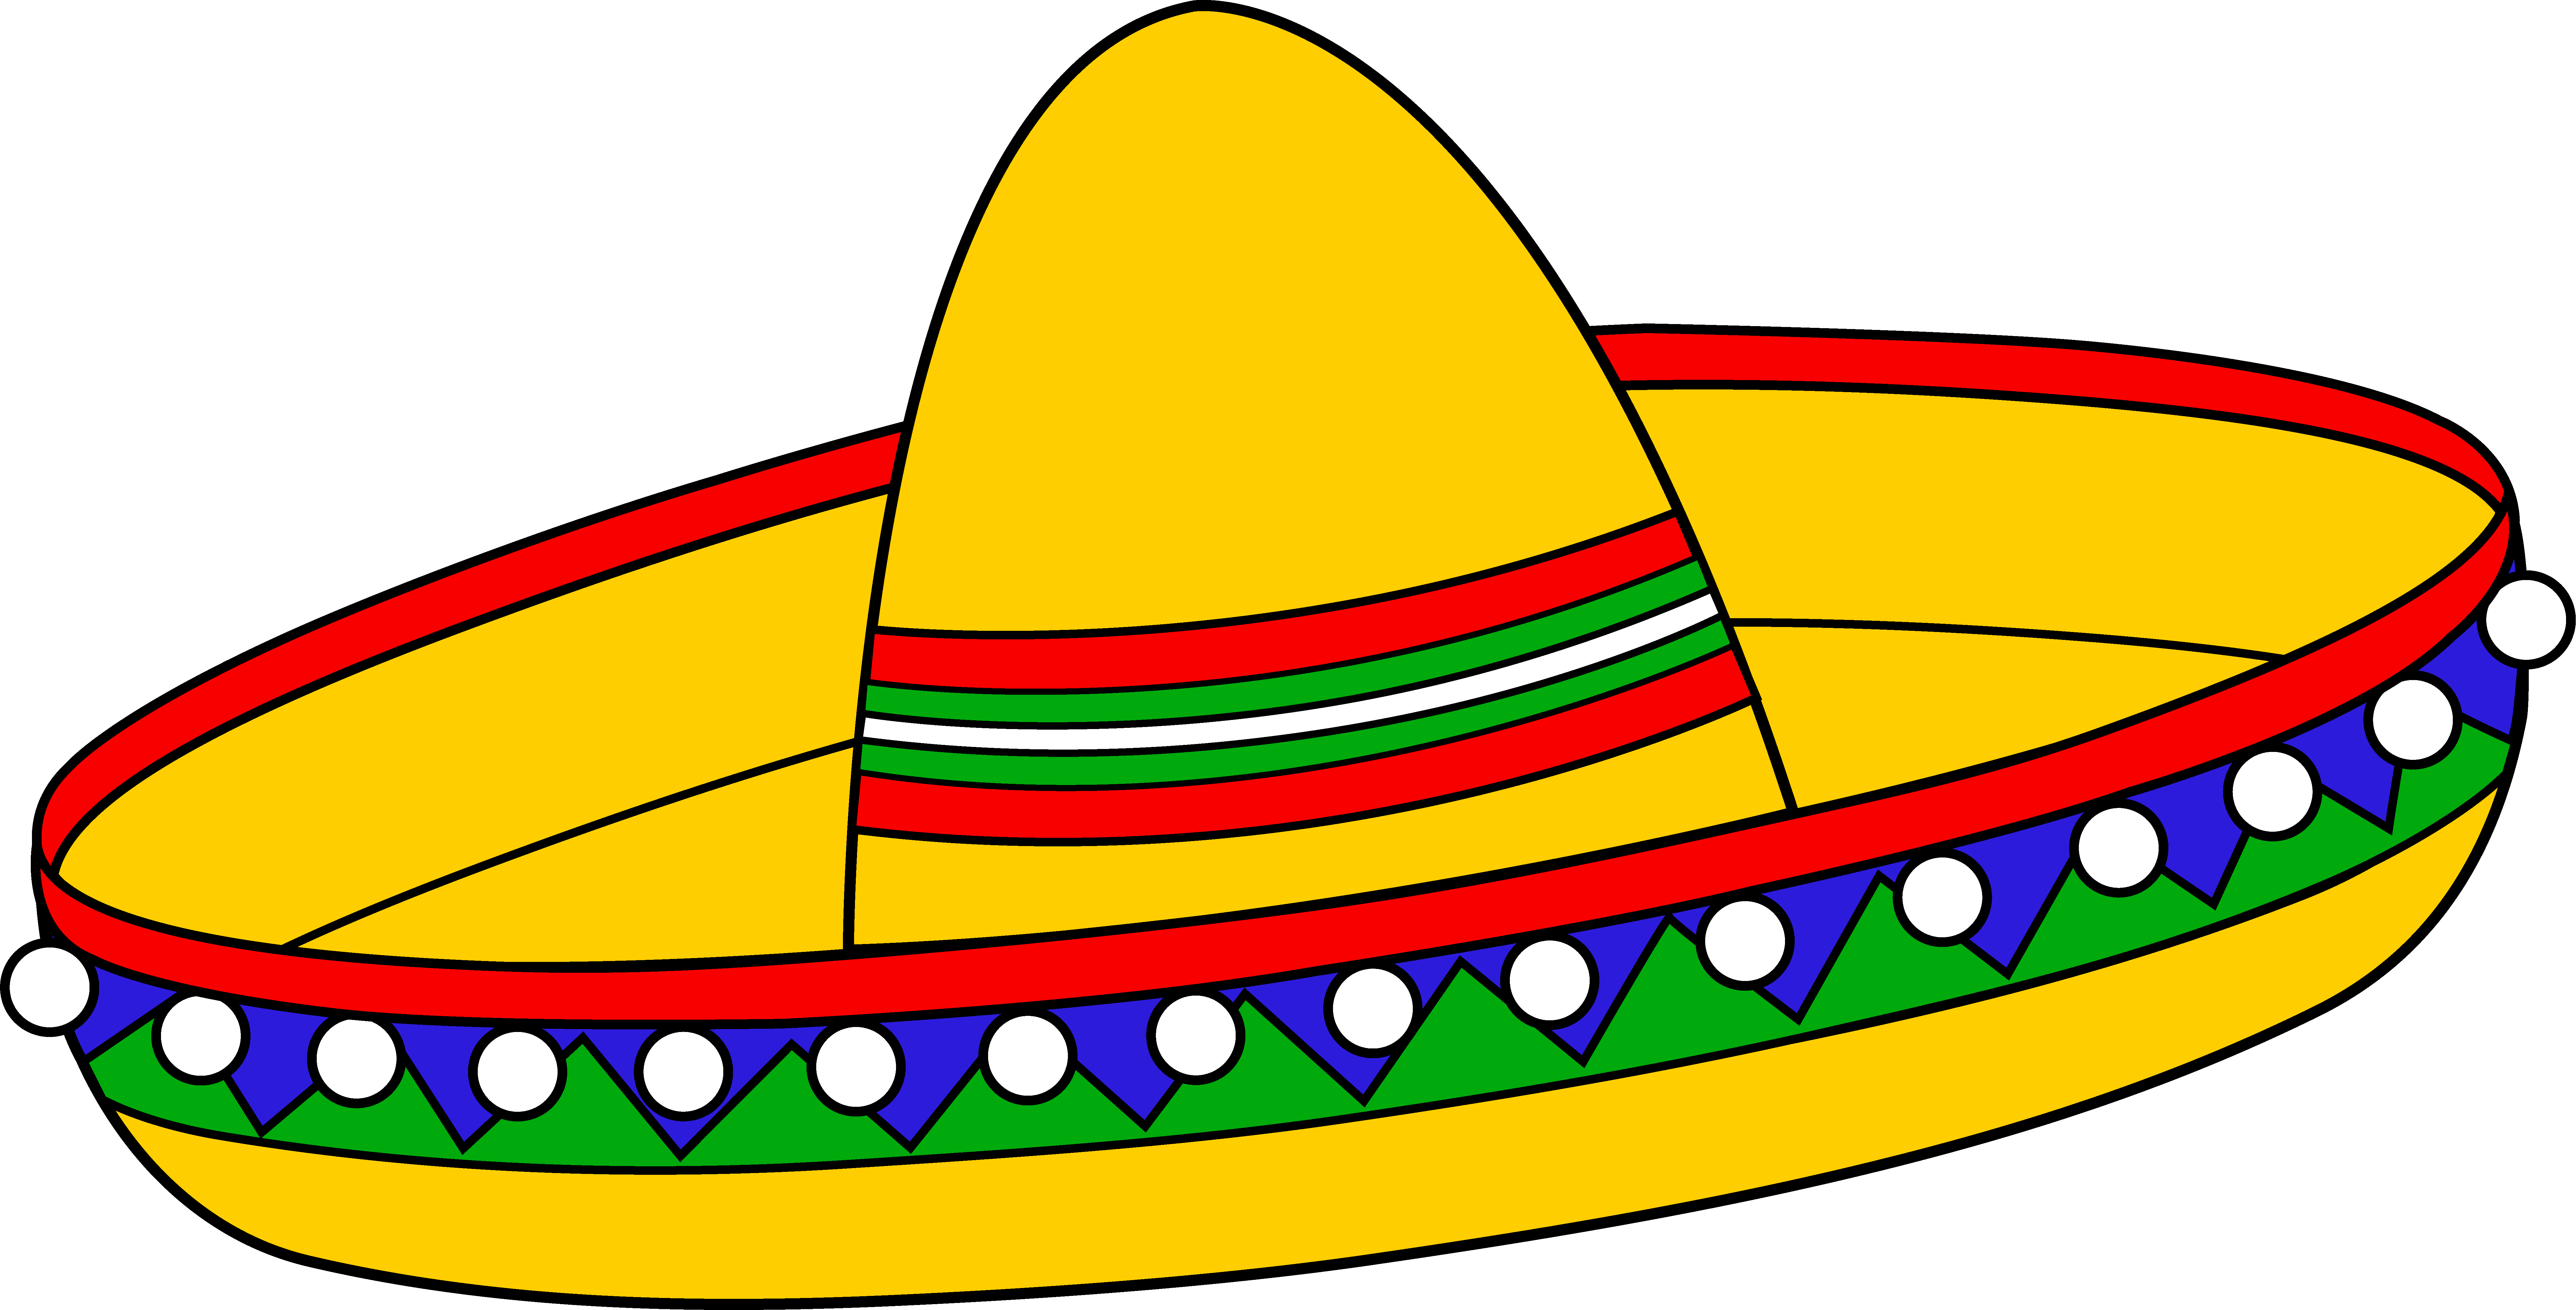 mustache clipart old hat